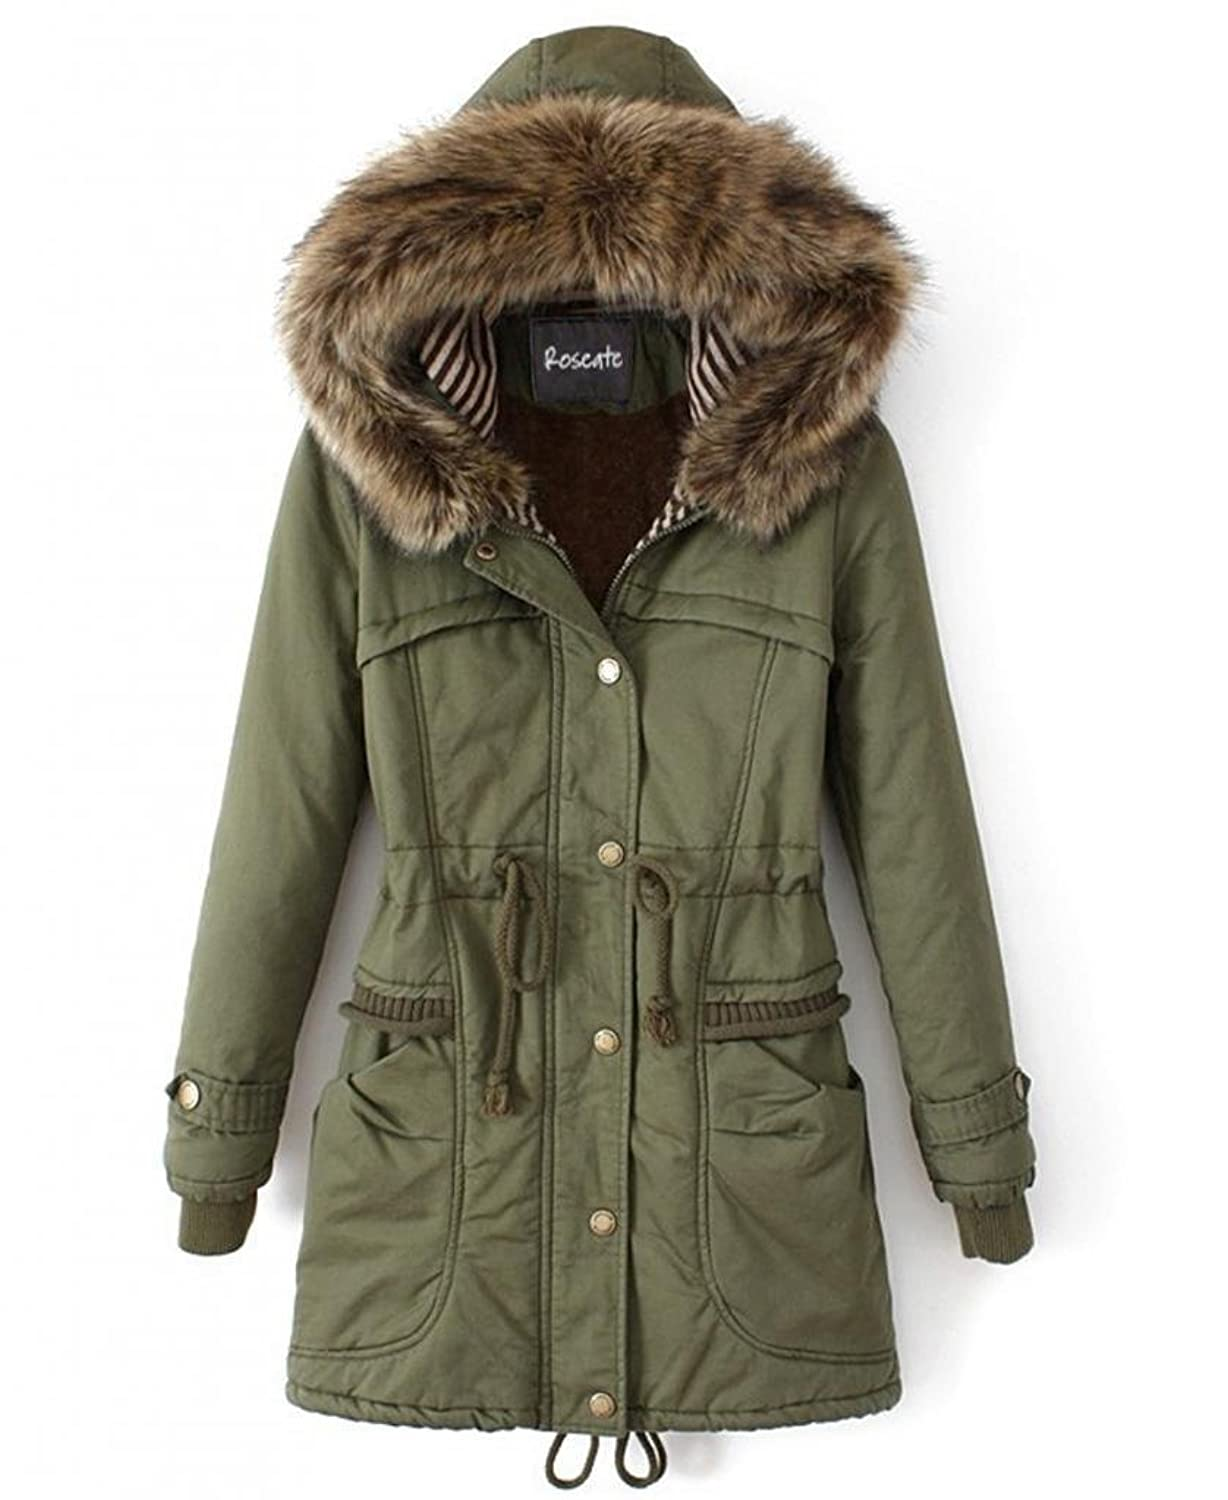 Amazon.com: Roseate Women's Long Quilted Coat Green Casual Parkas ...